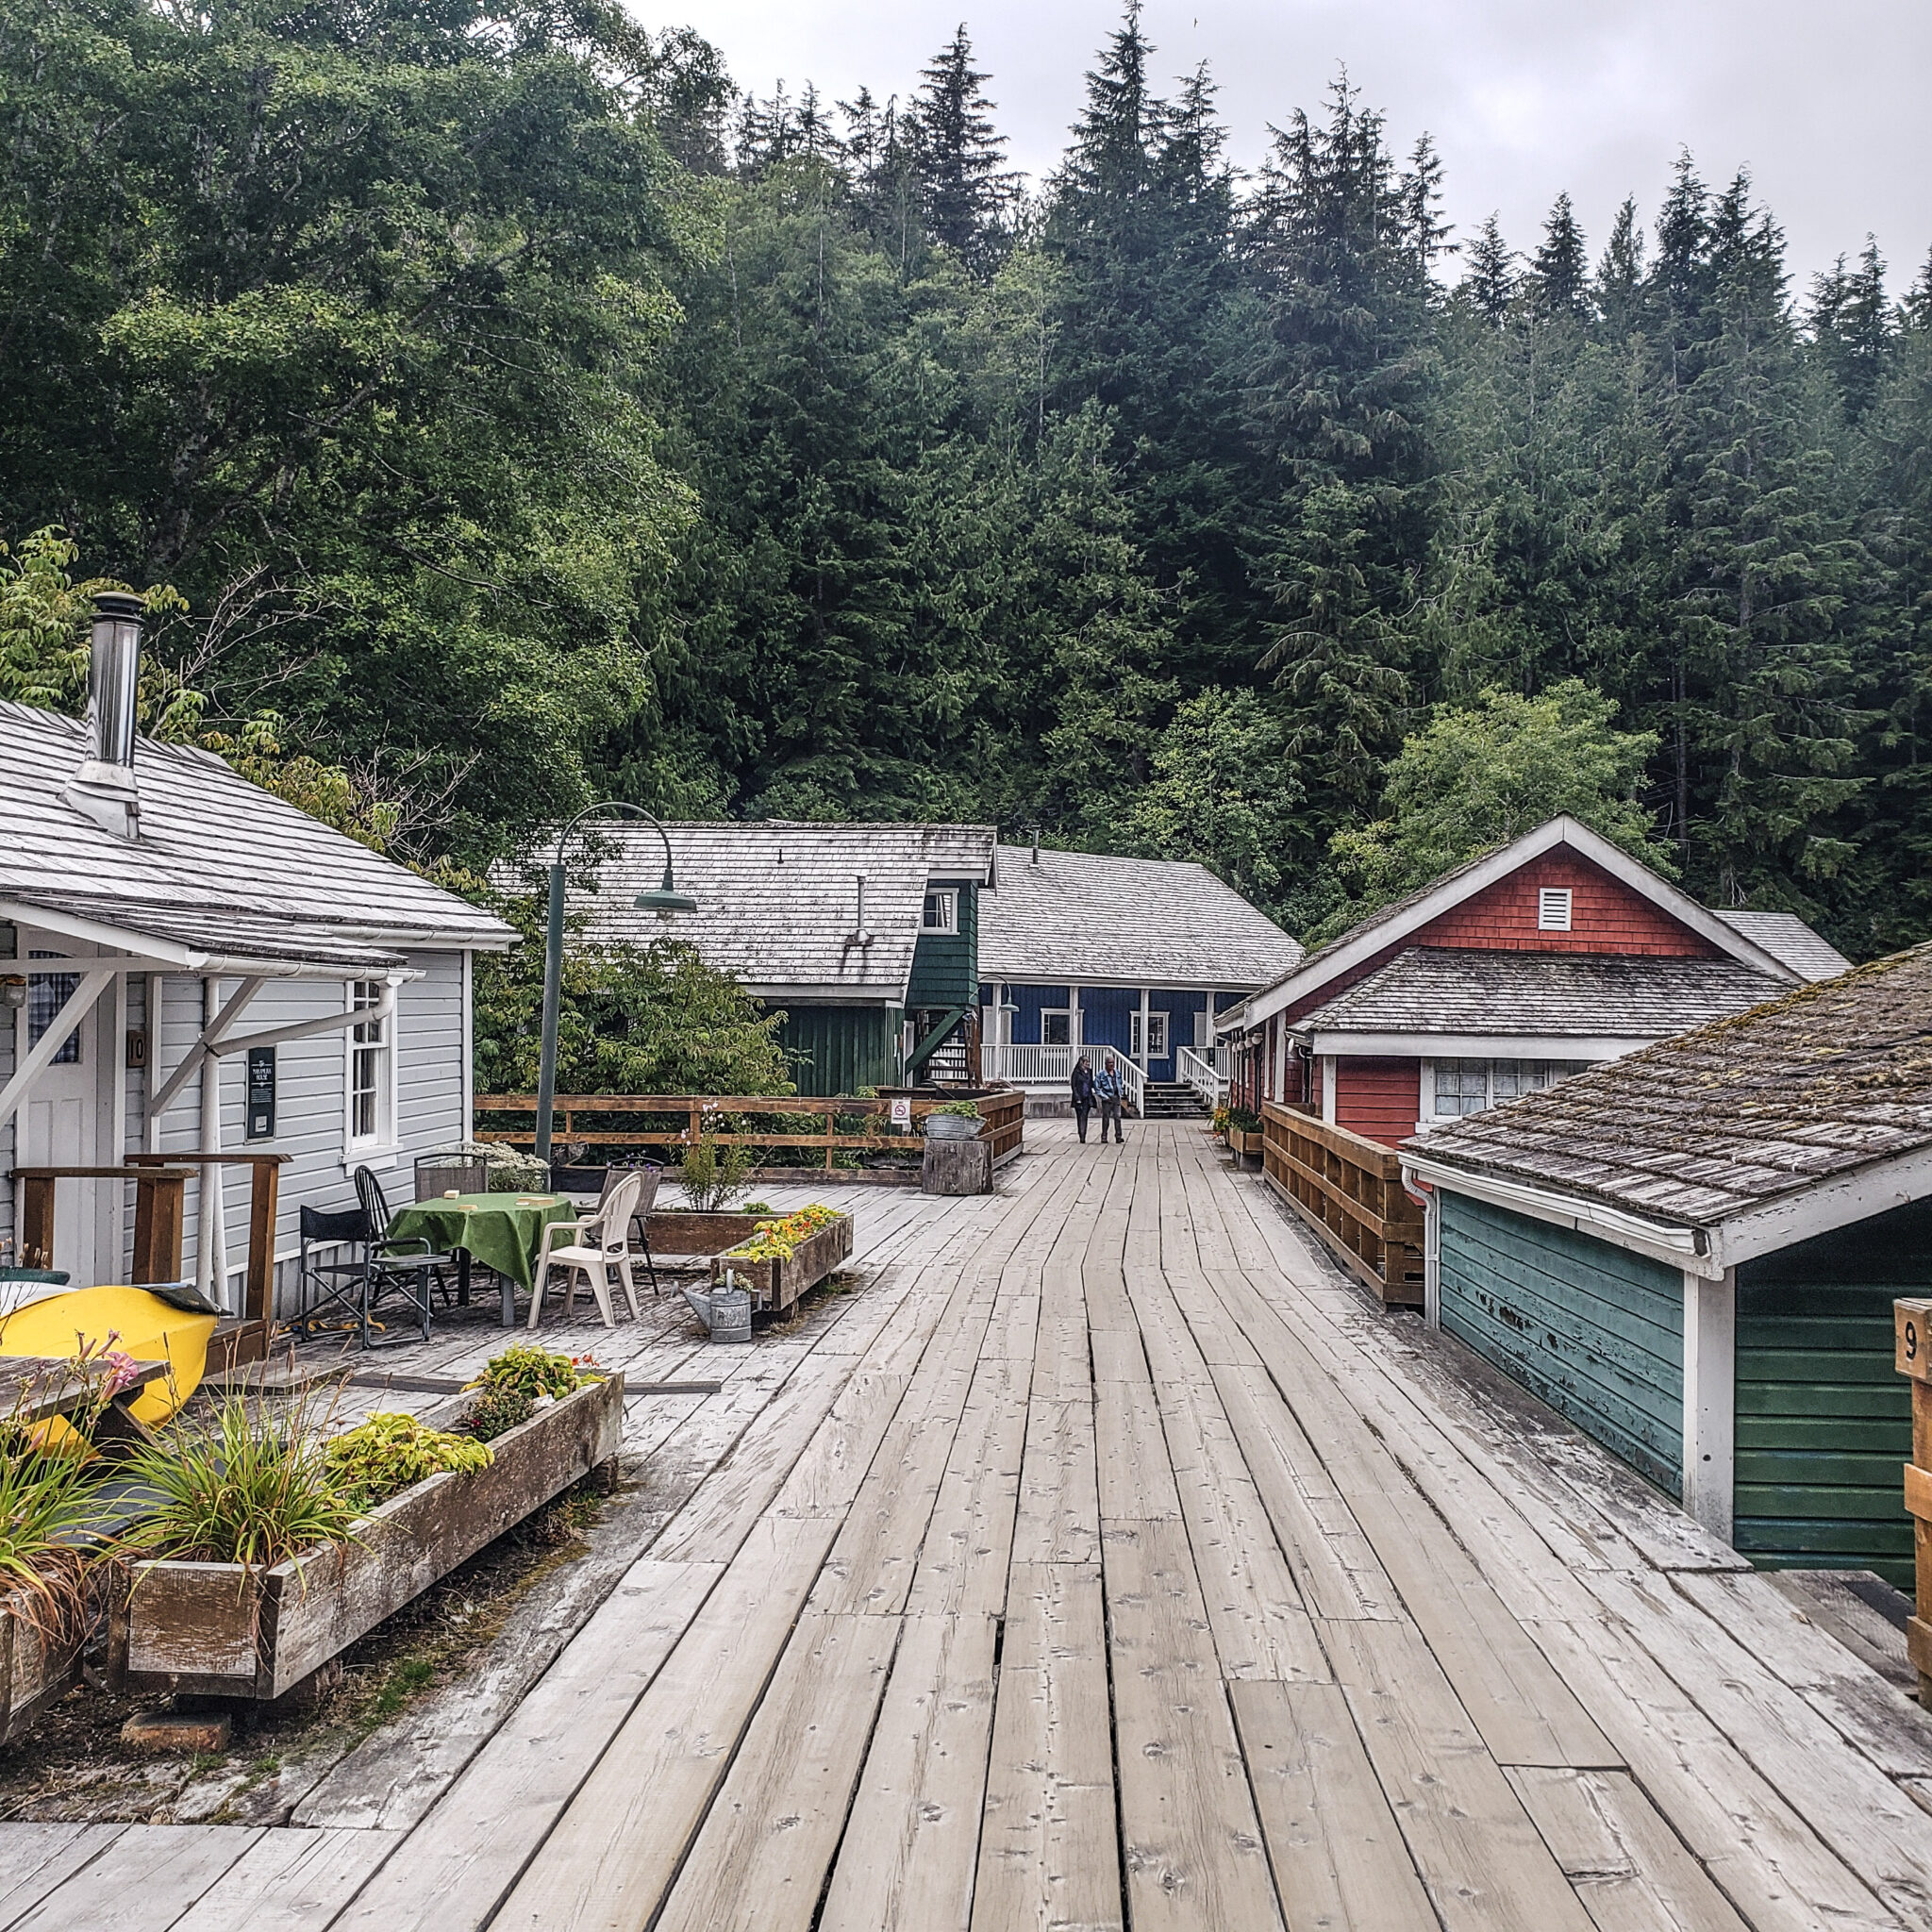 Visit Port Hardy - Vancouver Island North - Explore Canada - Hello British Columbia - Telegraph Cove